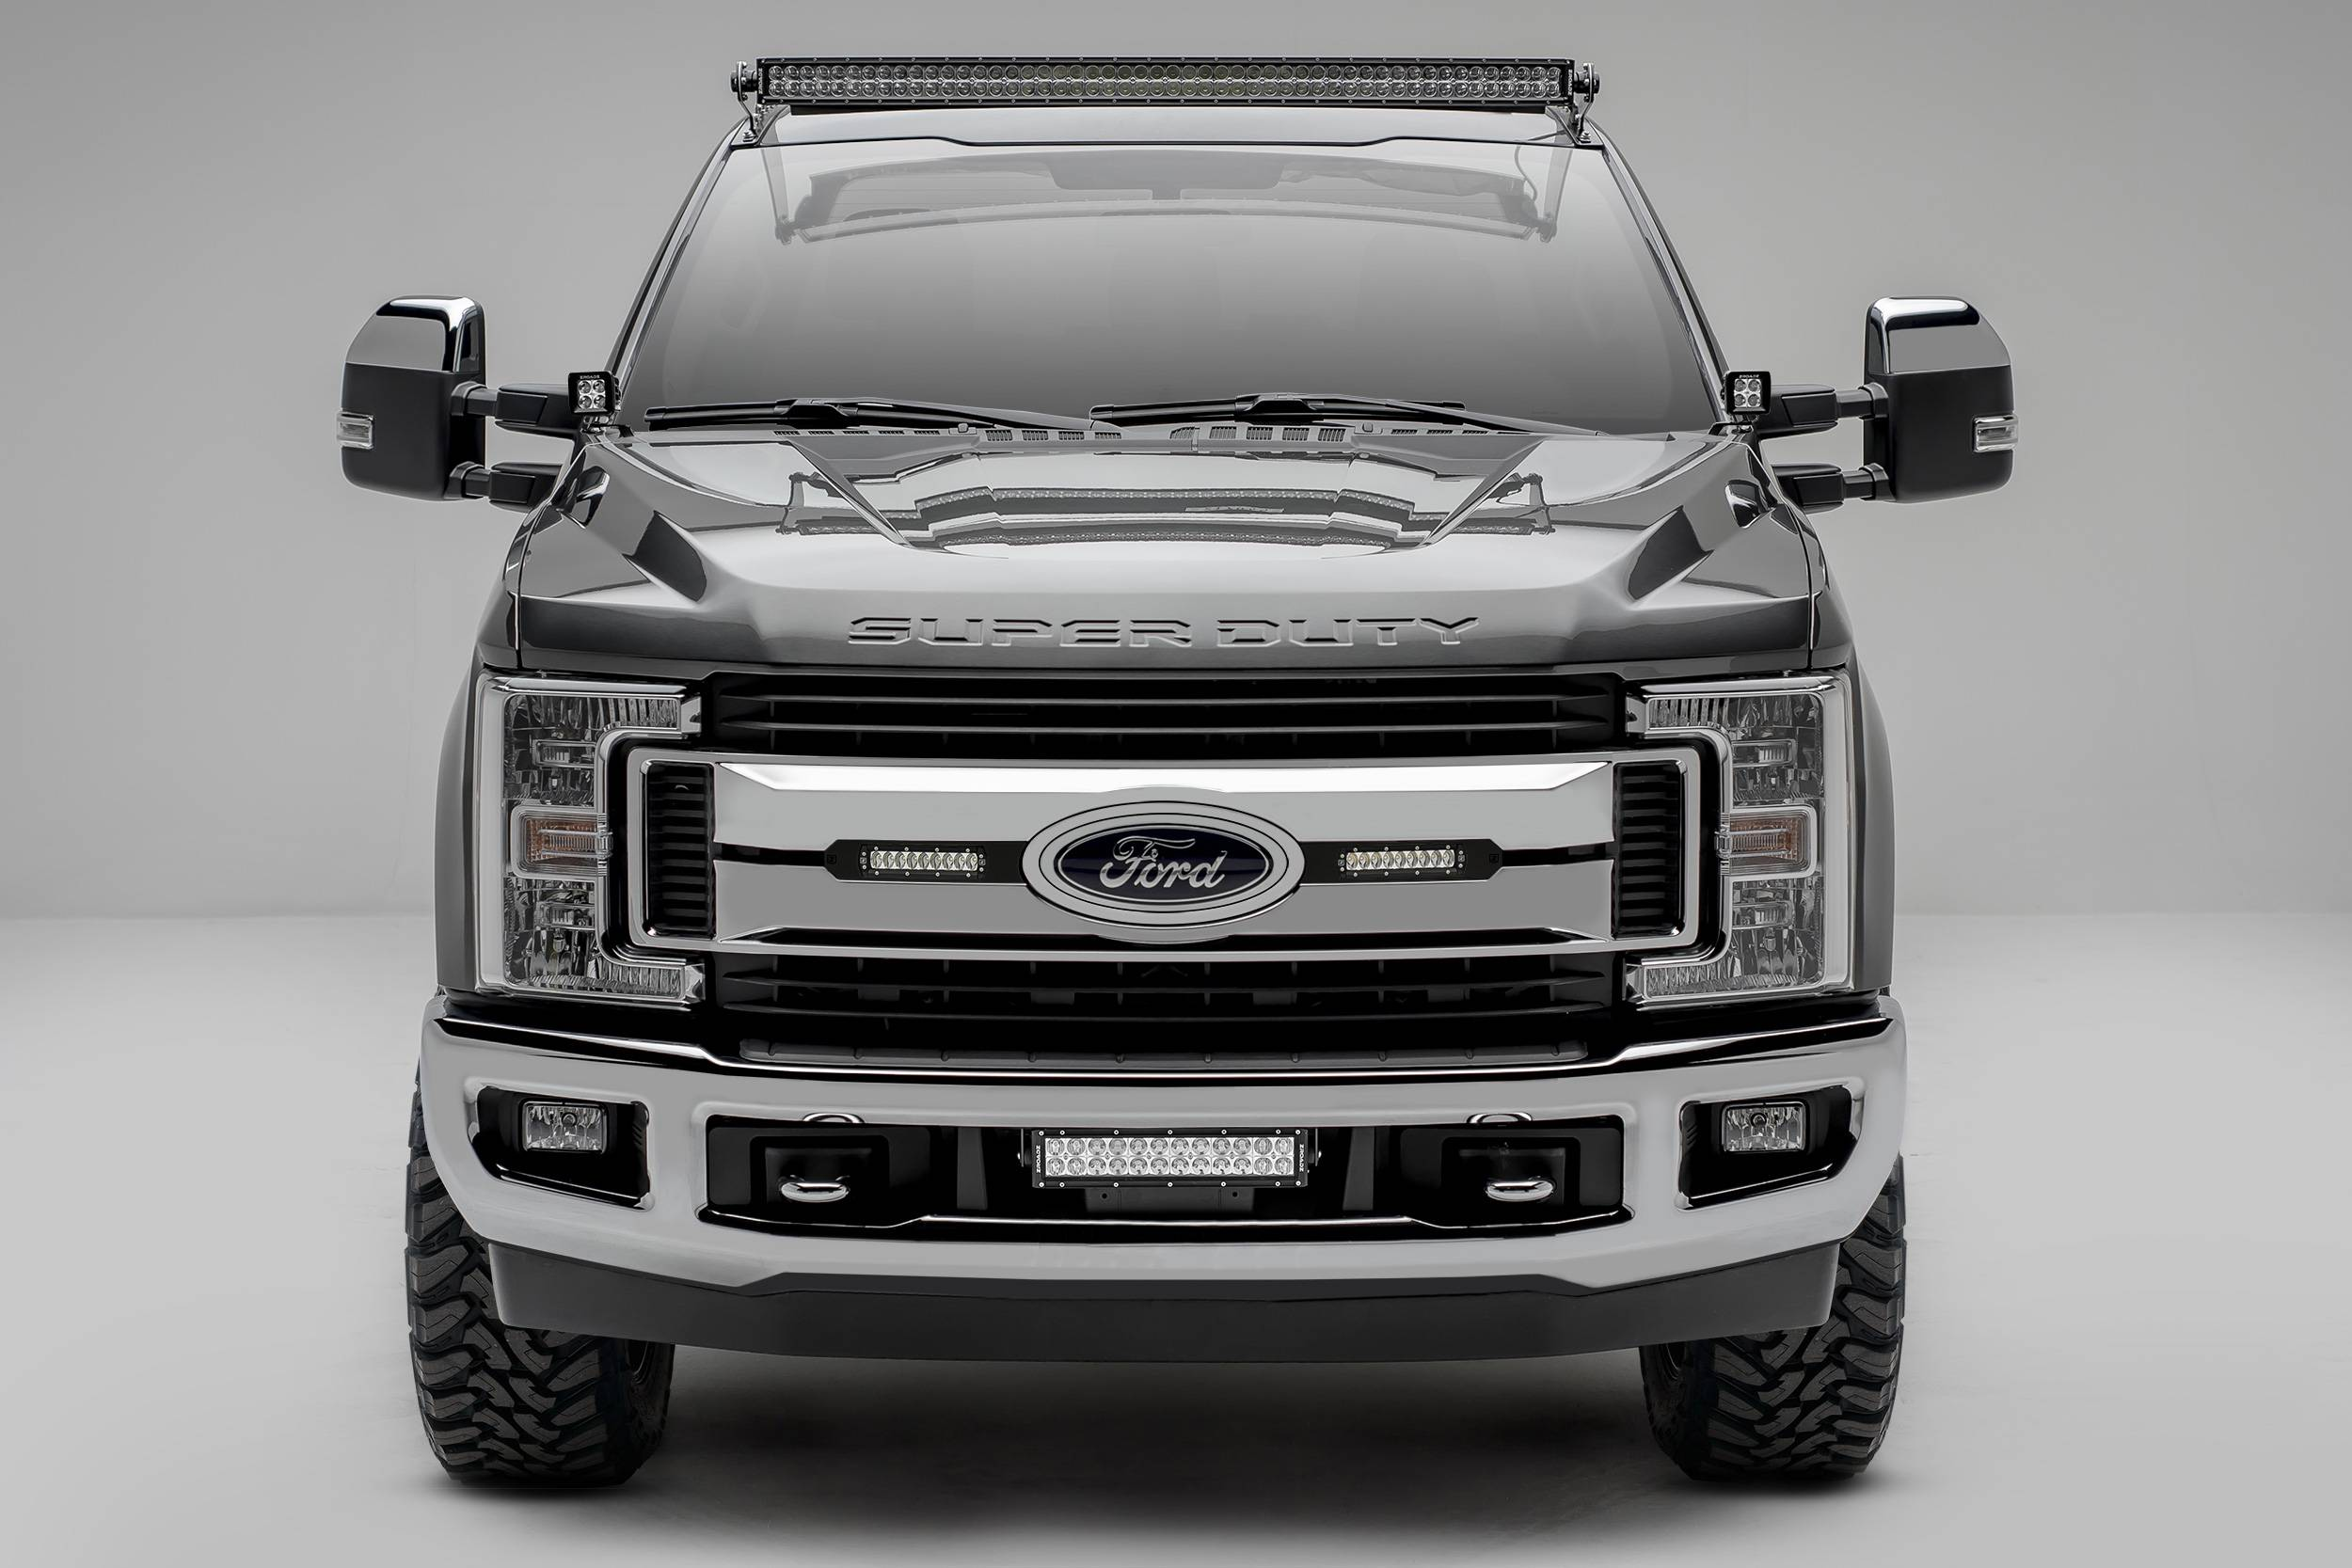 ZROADZ                                             - 2017-2019 Ford Super Duty XLT, XL STX OEM Grille LED Kit, Incl. (2) 6 Inch LED Straight Single Row Slim Light Bars, Black - PN #Z415571-KIT